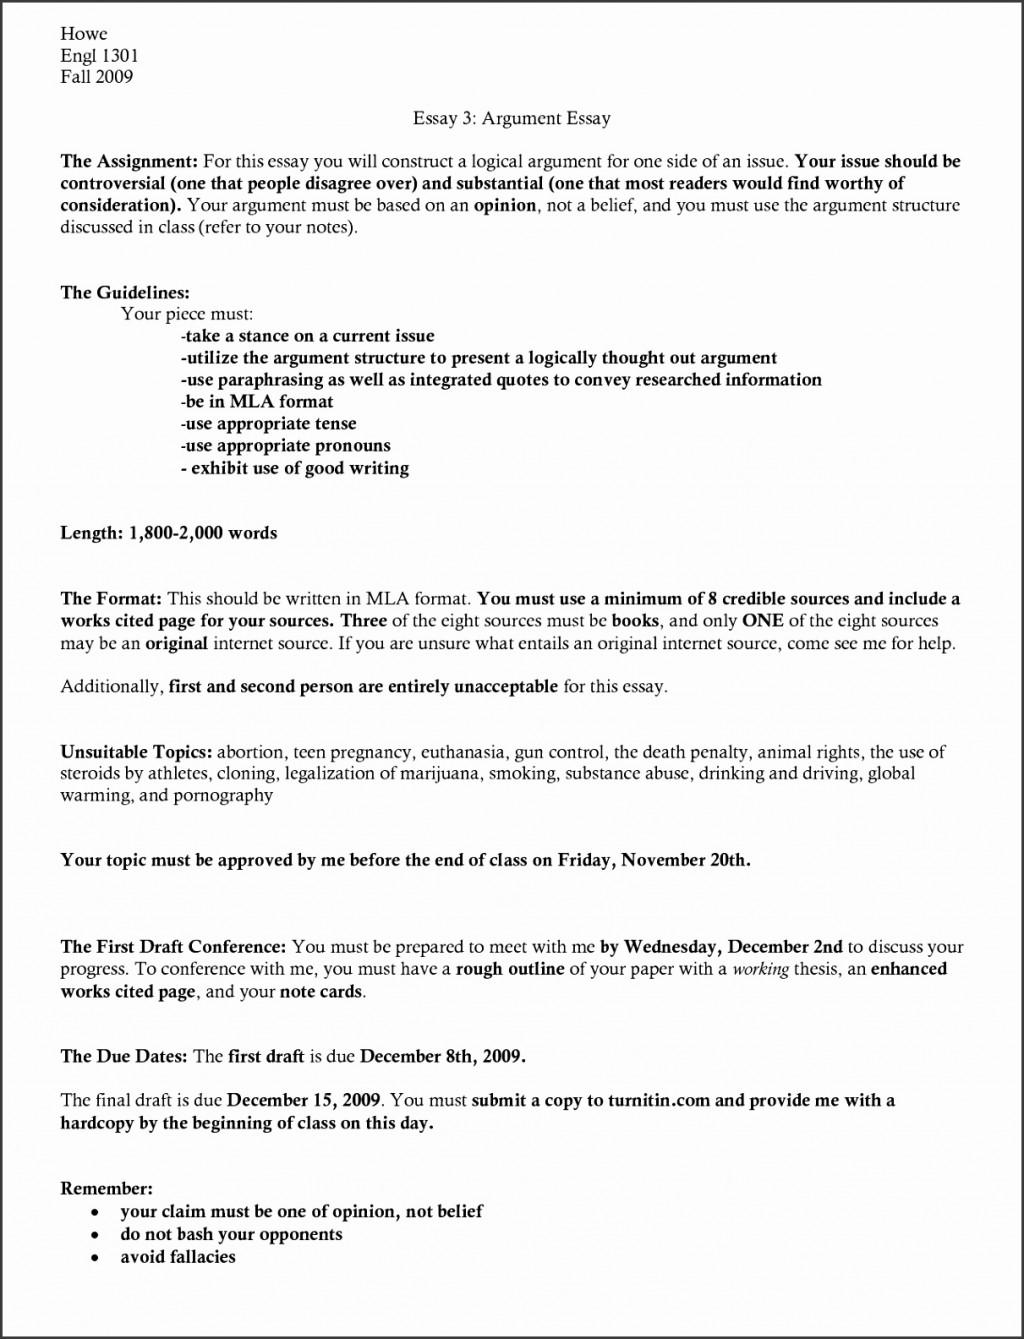 020 Mla Research Paper Template Uguco Best Of Persuasive Essay Formatyle Fteeo Outline For Formidable Format Style Sample Large